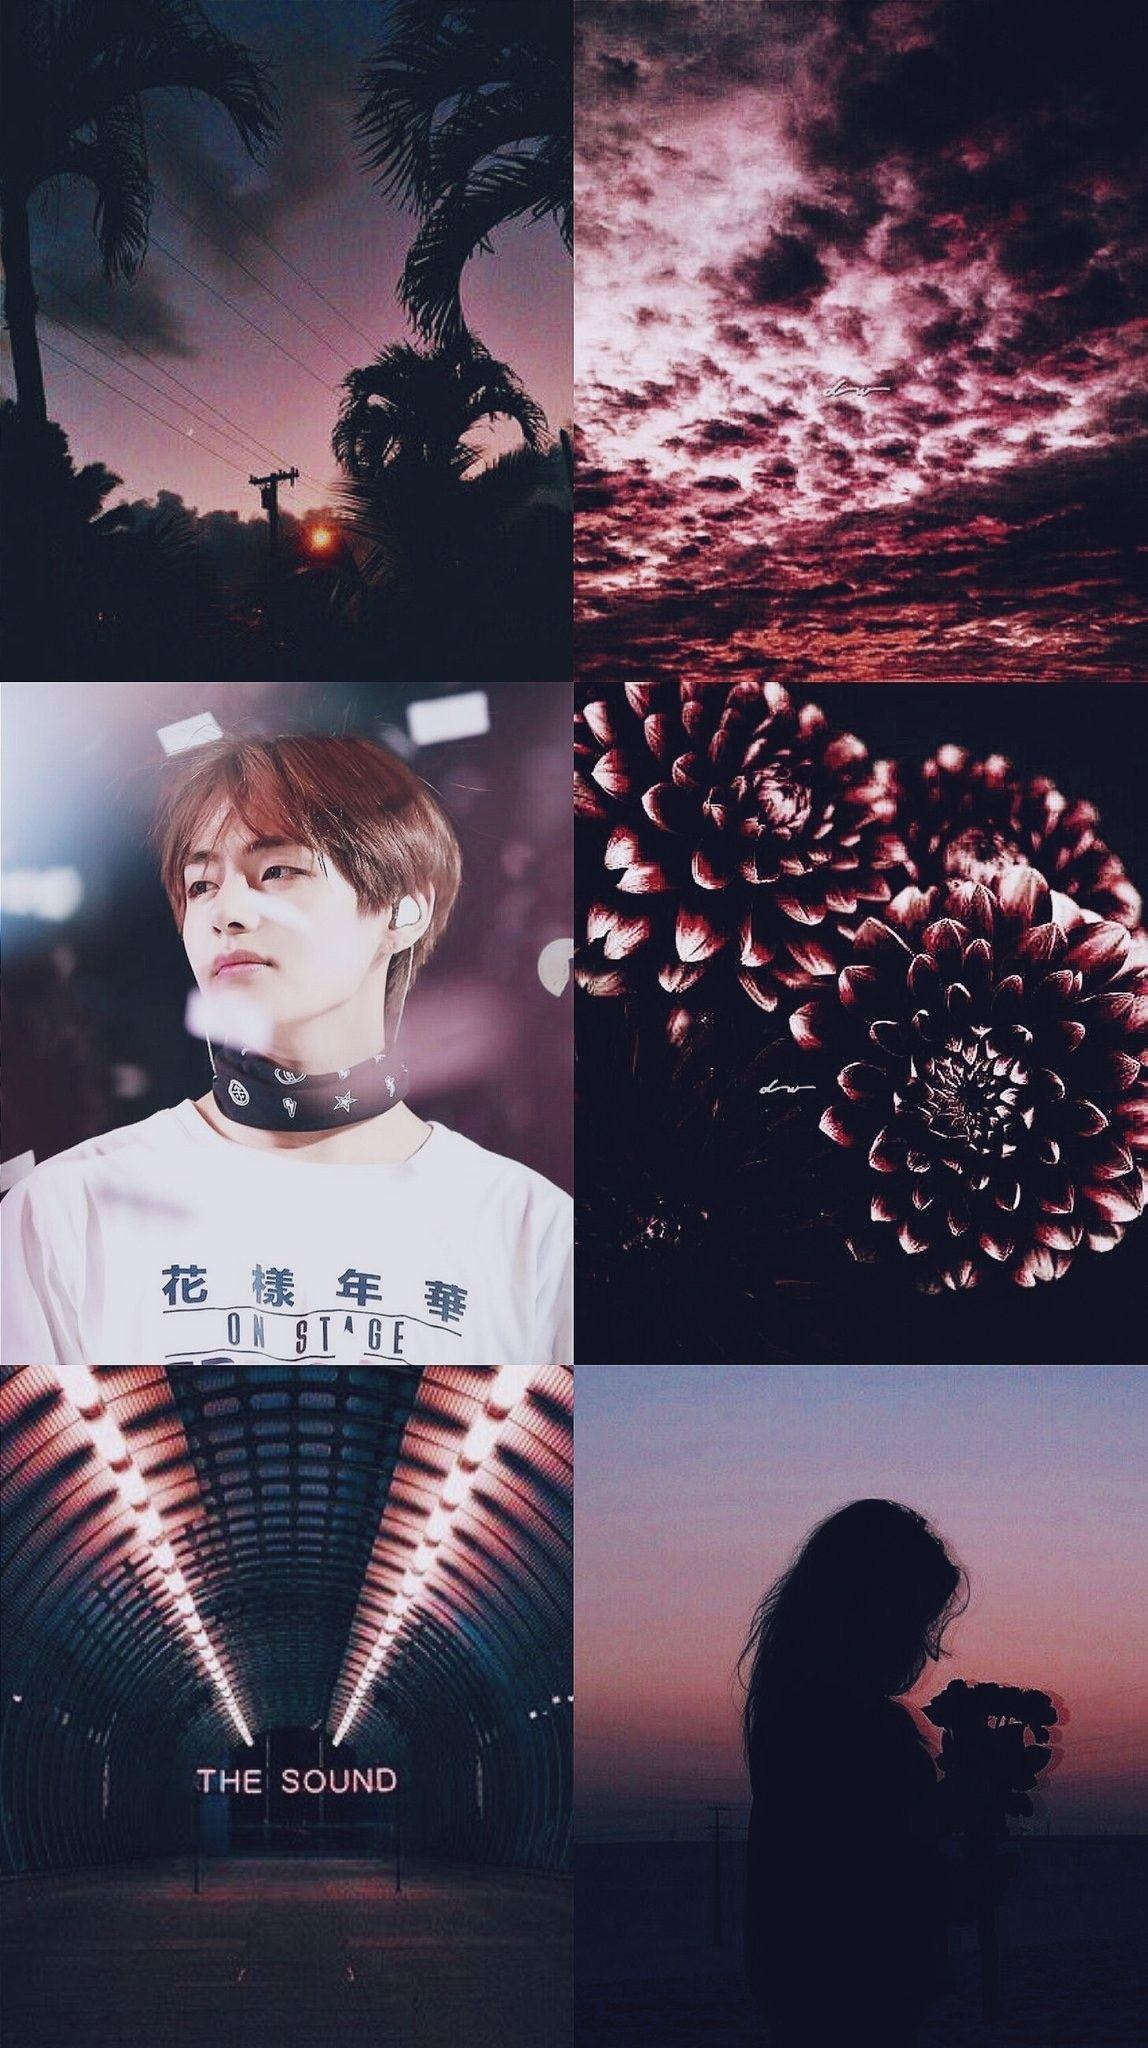 Bts Aesthetic Wallpapers Hd Lovely Bts Wallpapers 71 Image